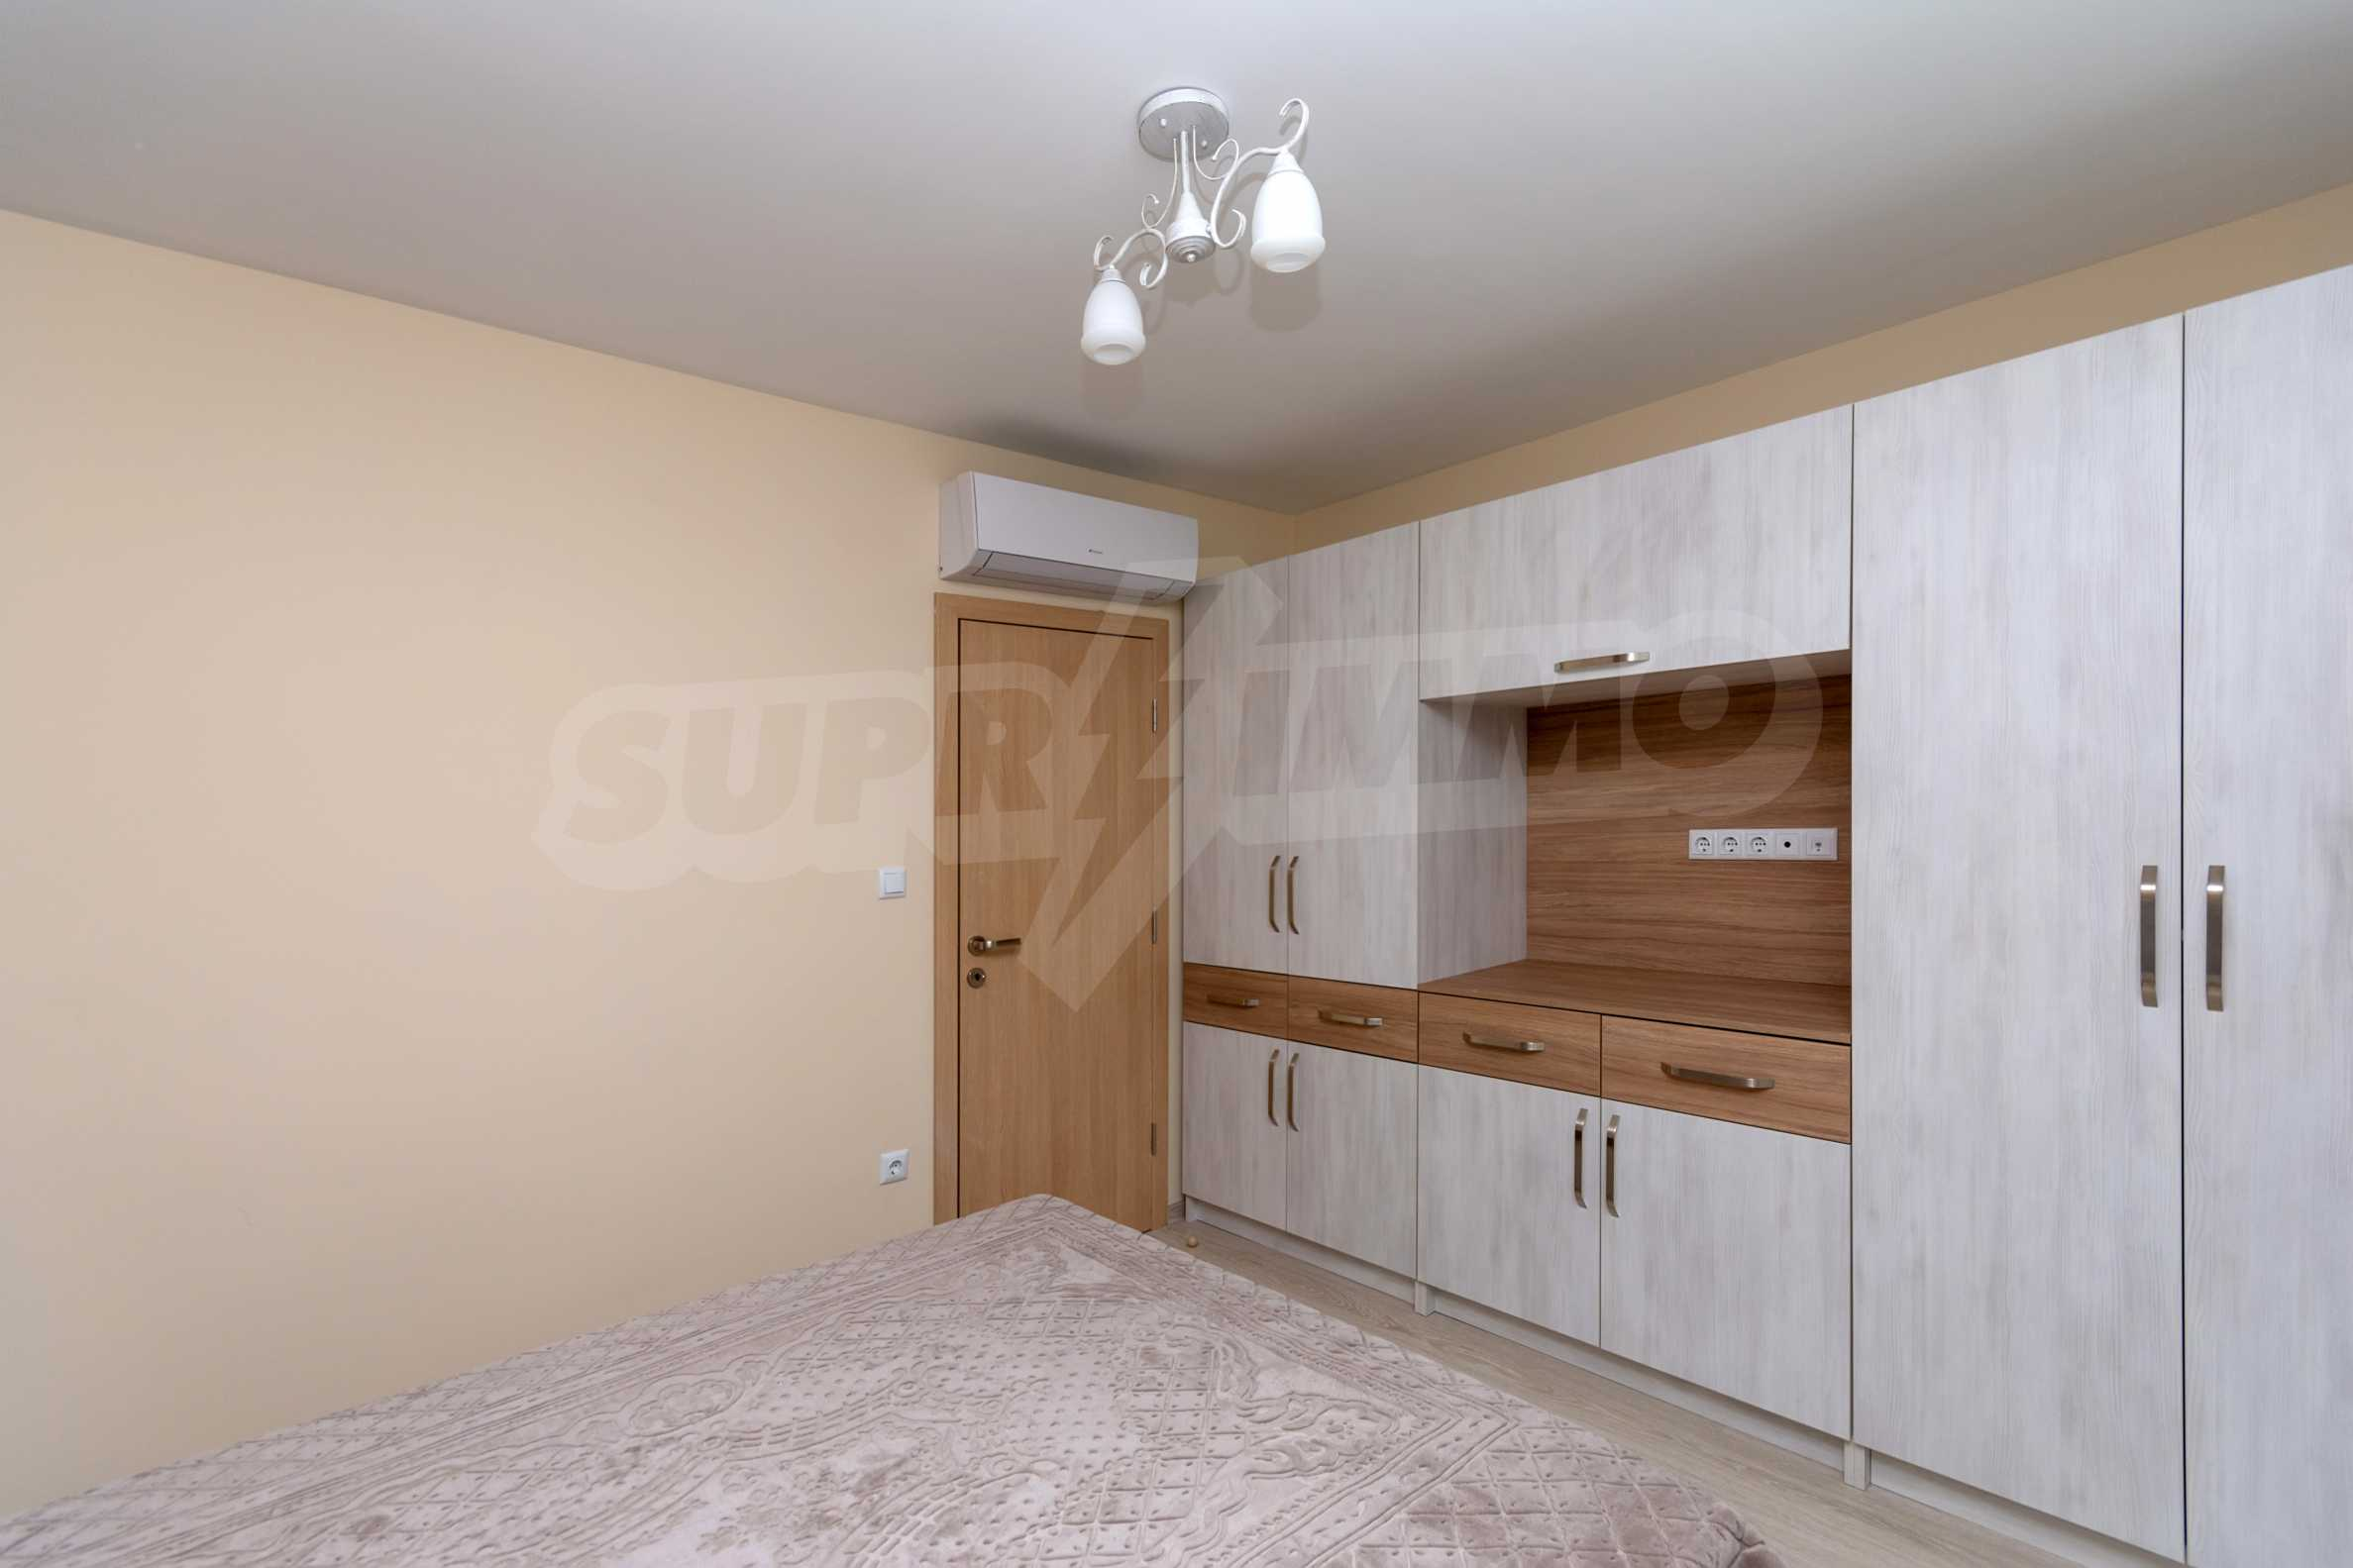 One bedroom apartment in a luxury residential building in a communicative location in Plovdiv 5